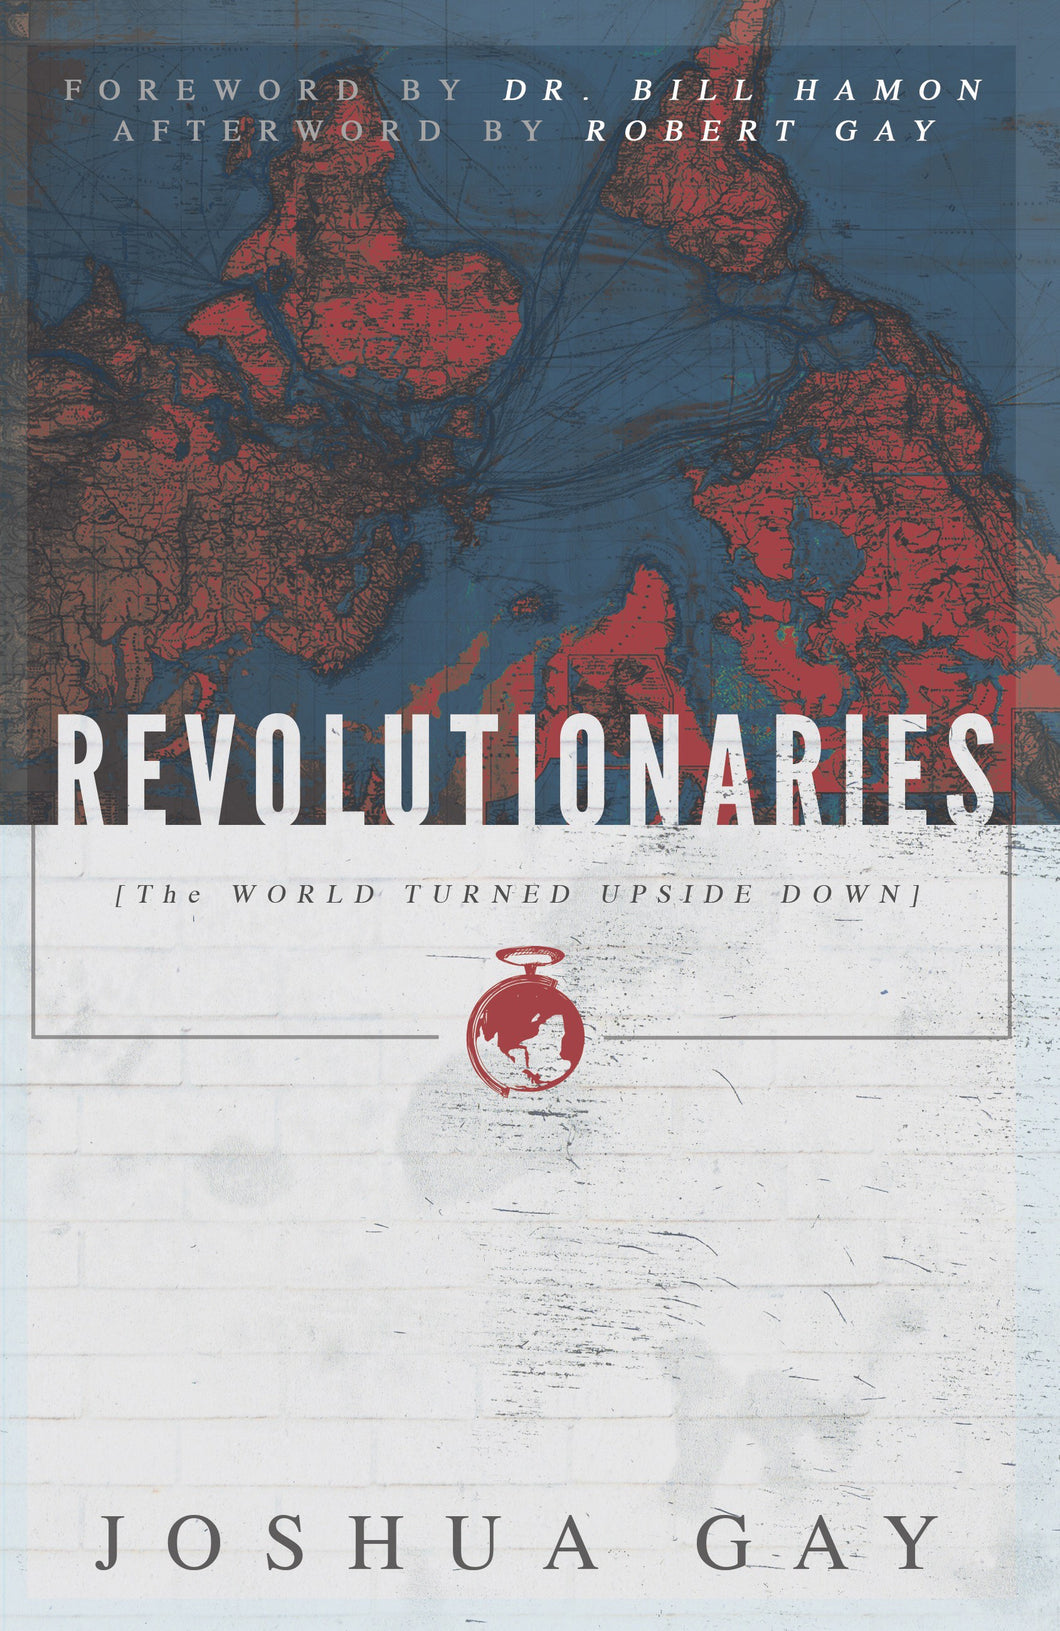 Revolutionaries: The World Turned Upside Down